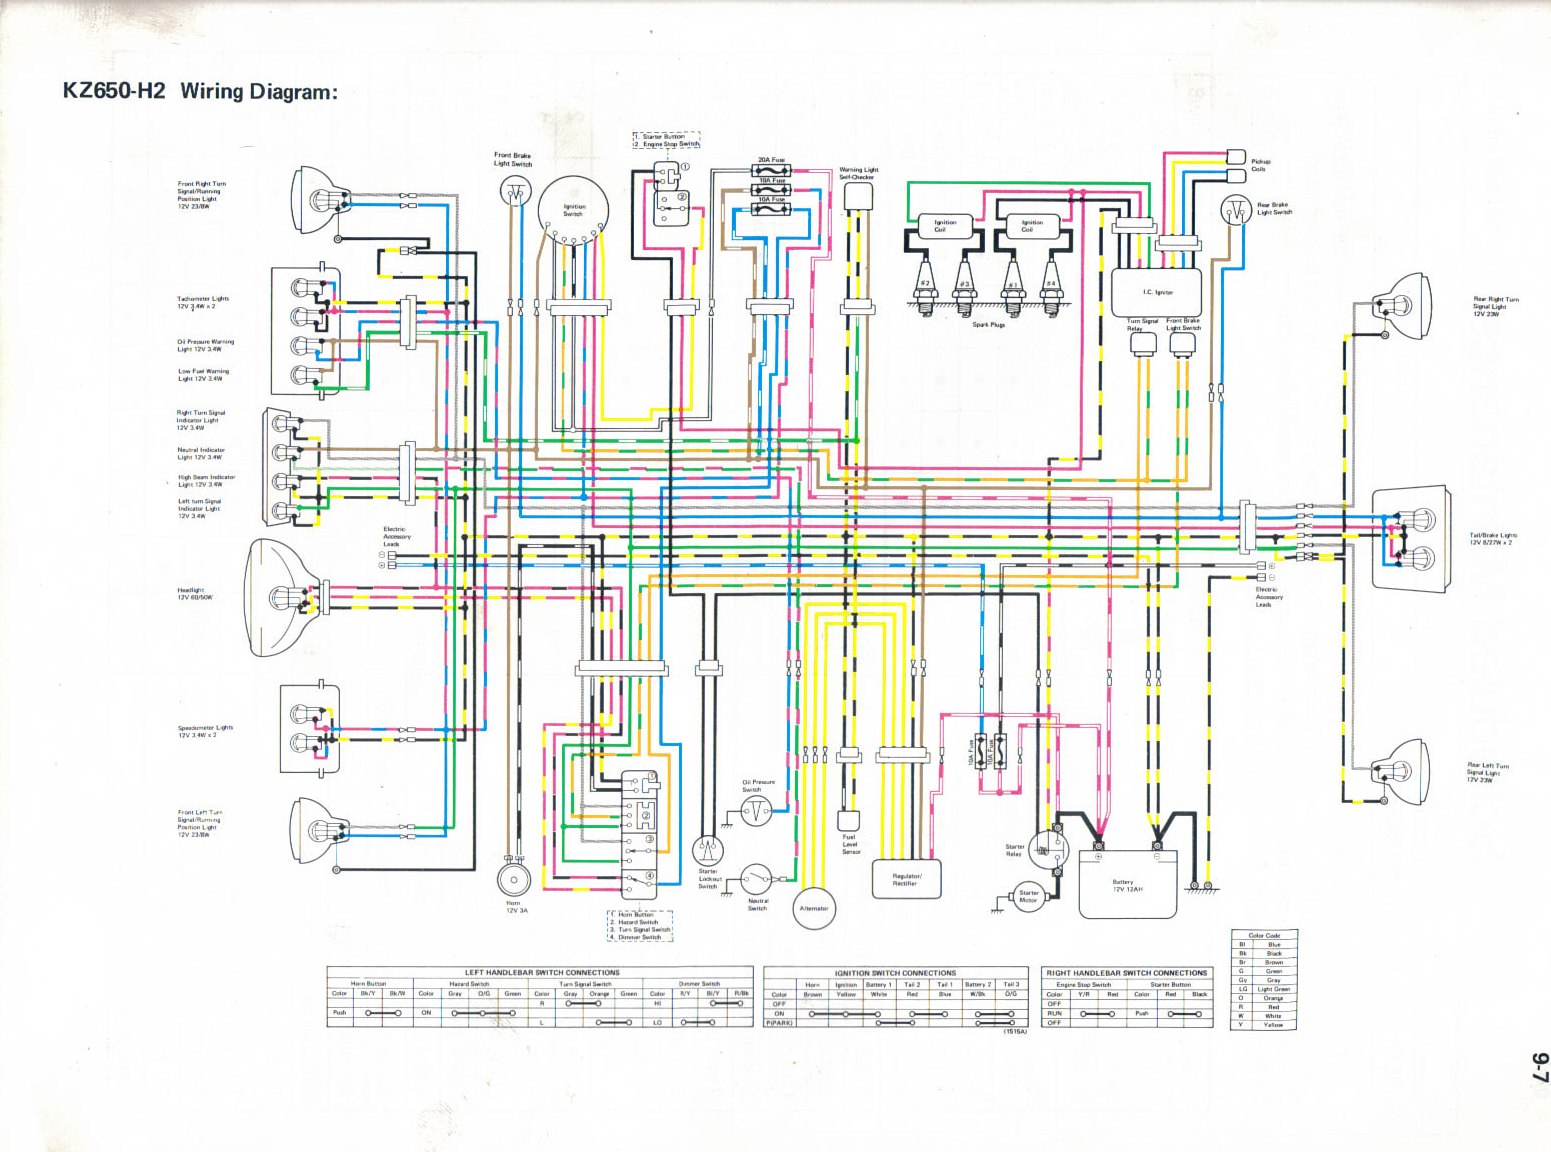 KZ650 H2 82 ski doo wiring diagram on 82 download wirning diagrams EX500 Connector Picture at fashall.co